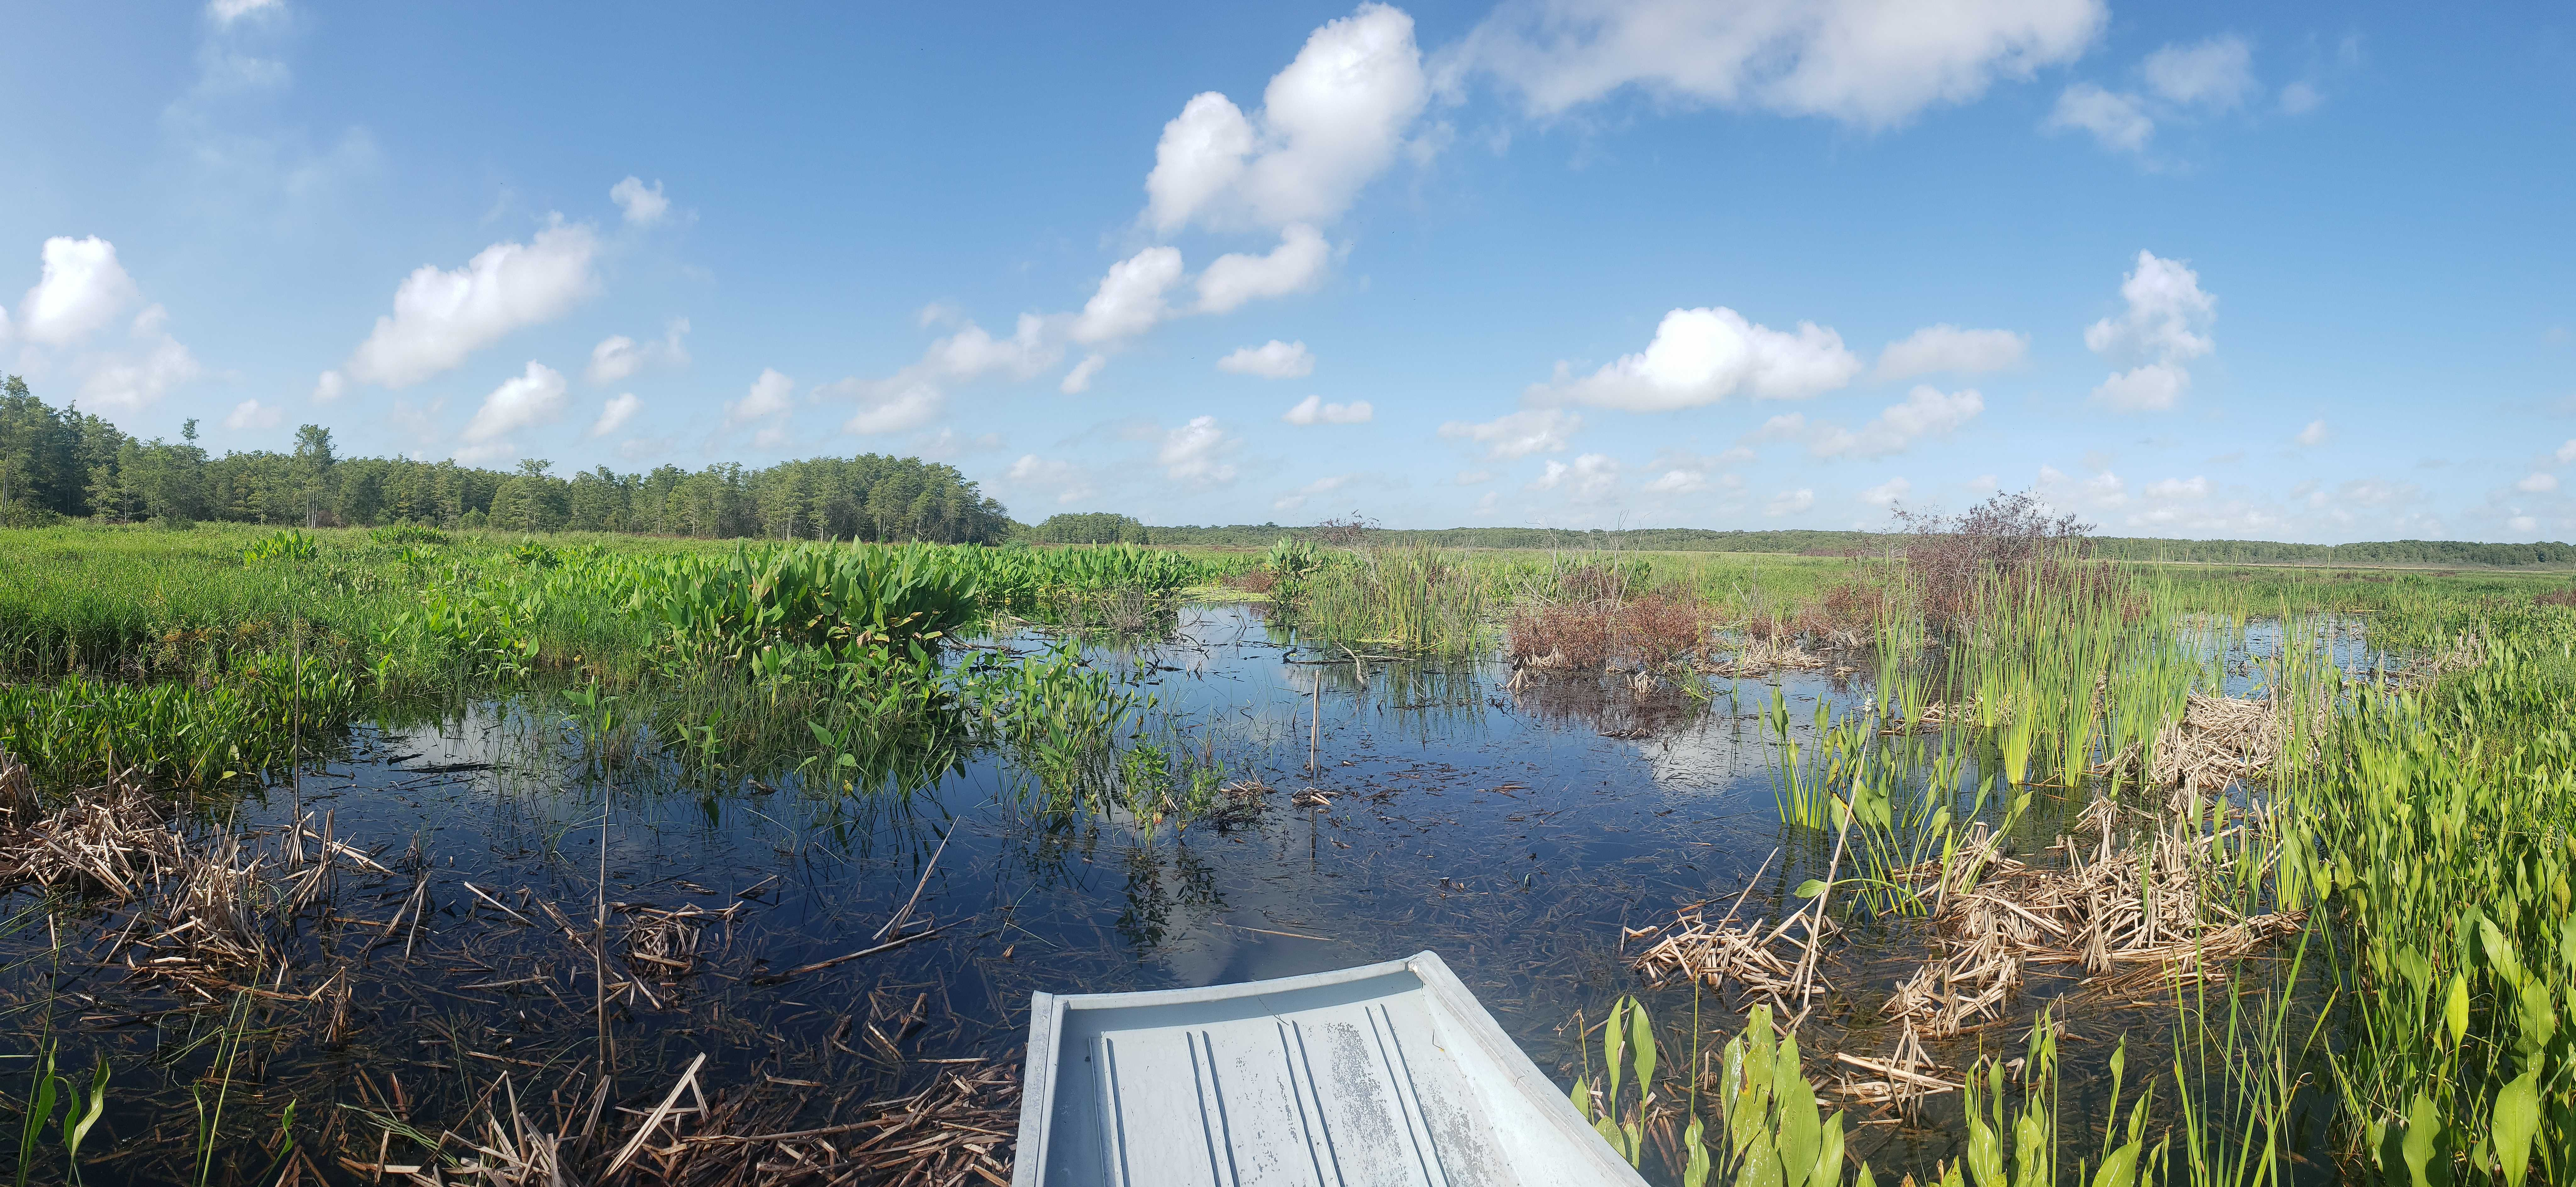 A view of a wetland